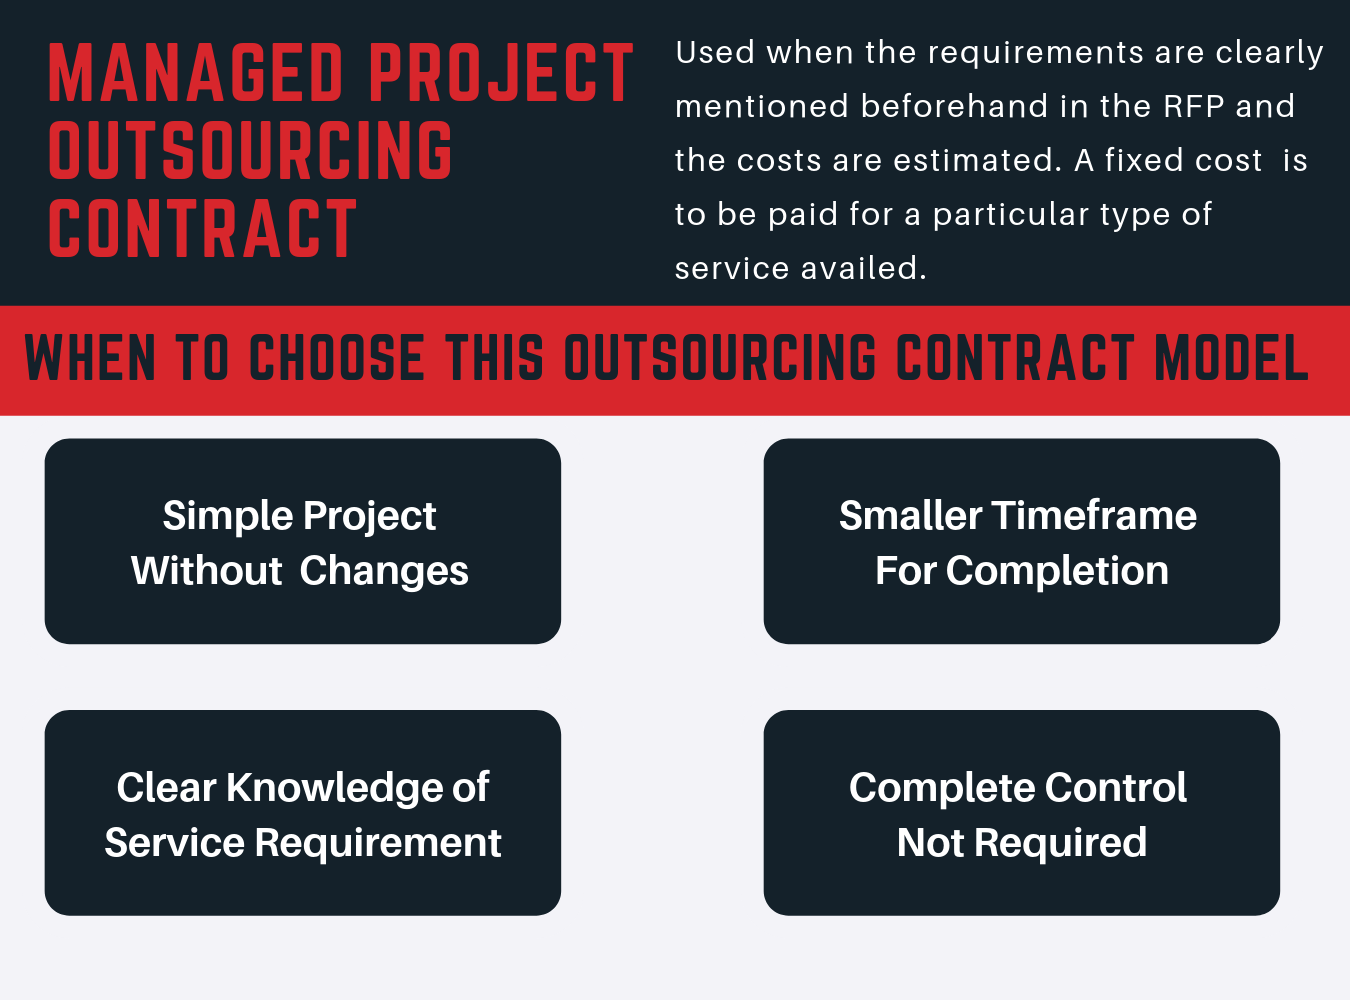 managed project outsourcing contract